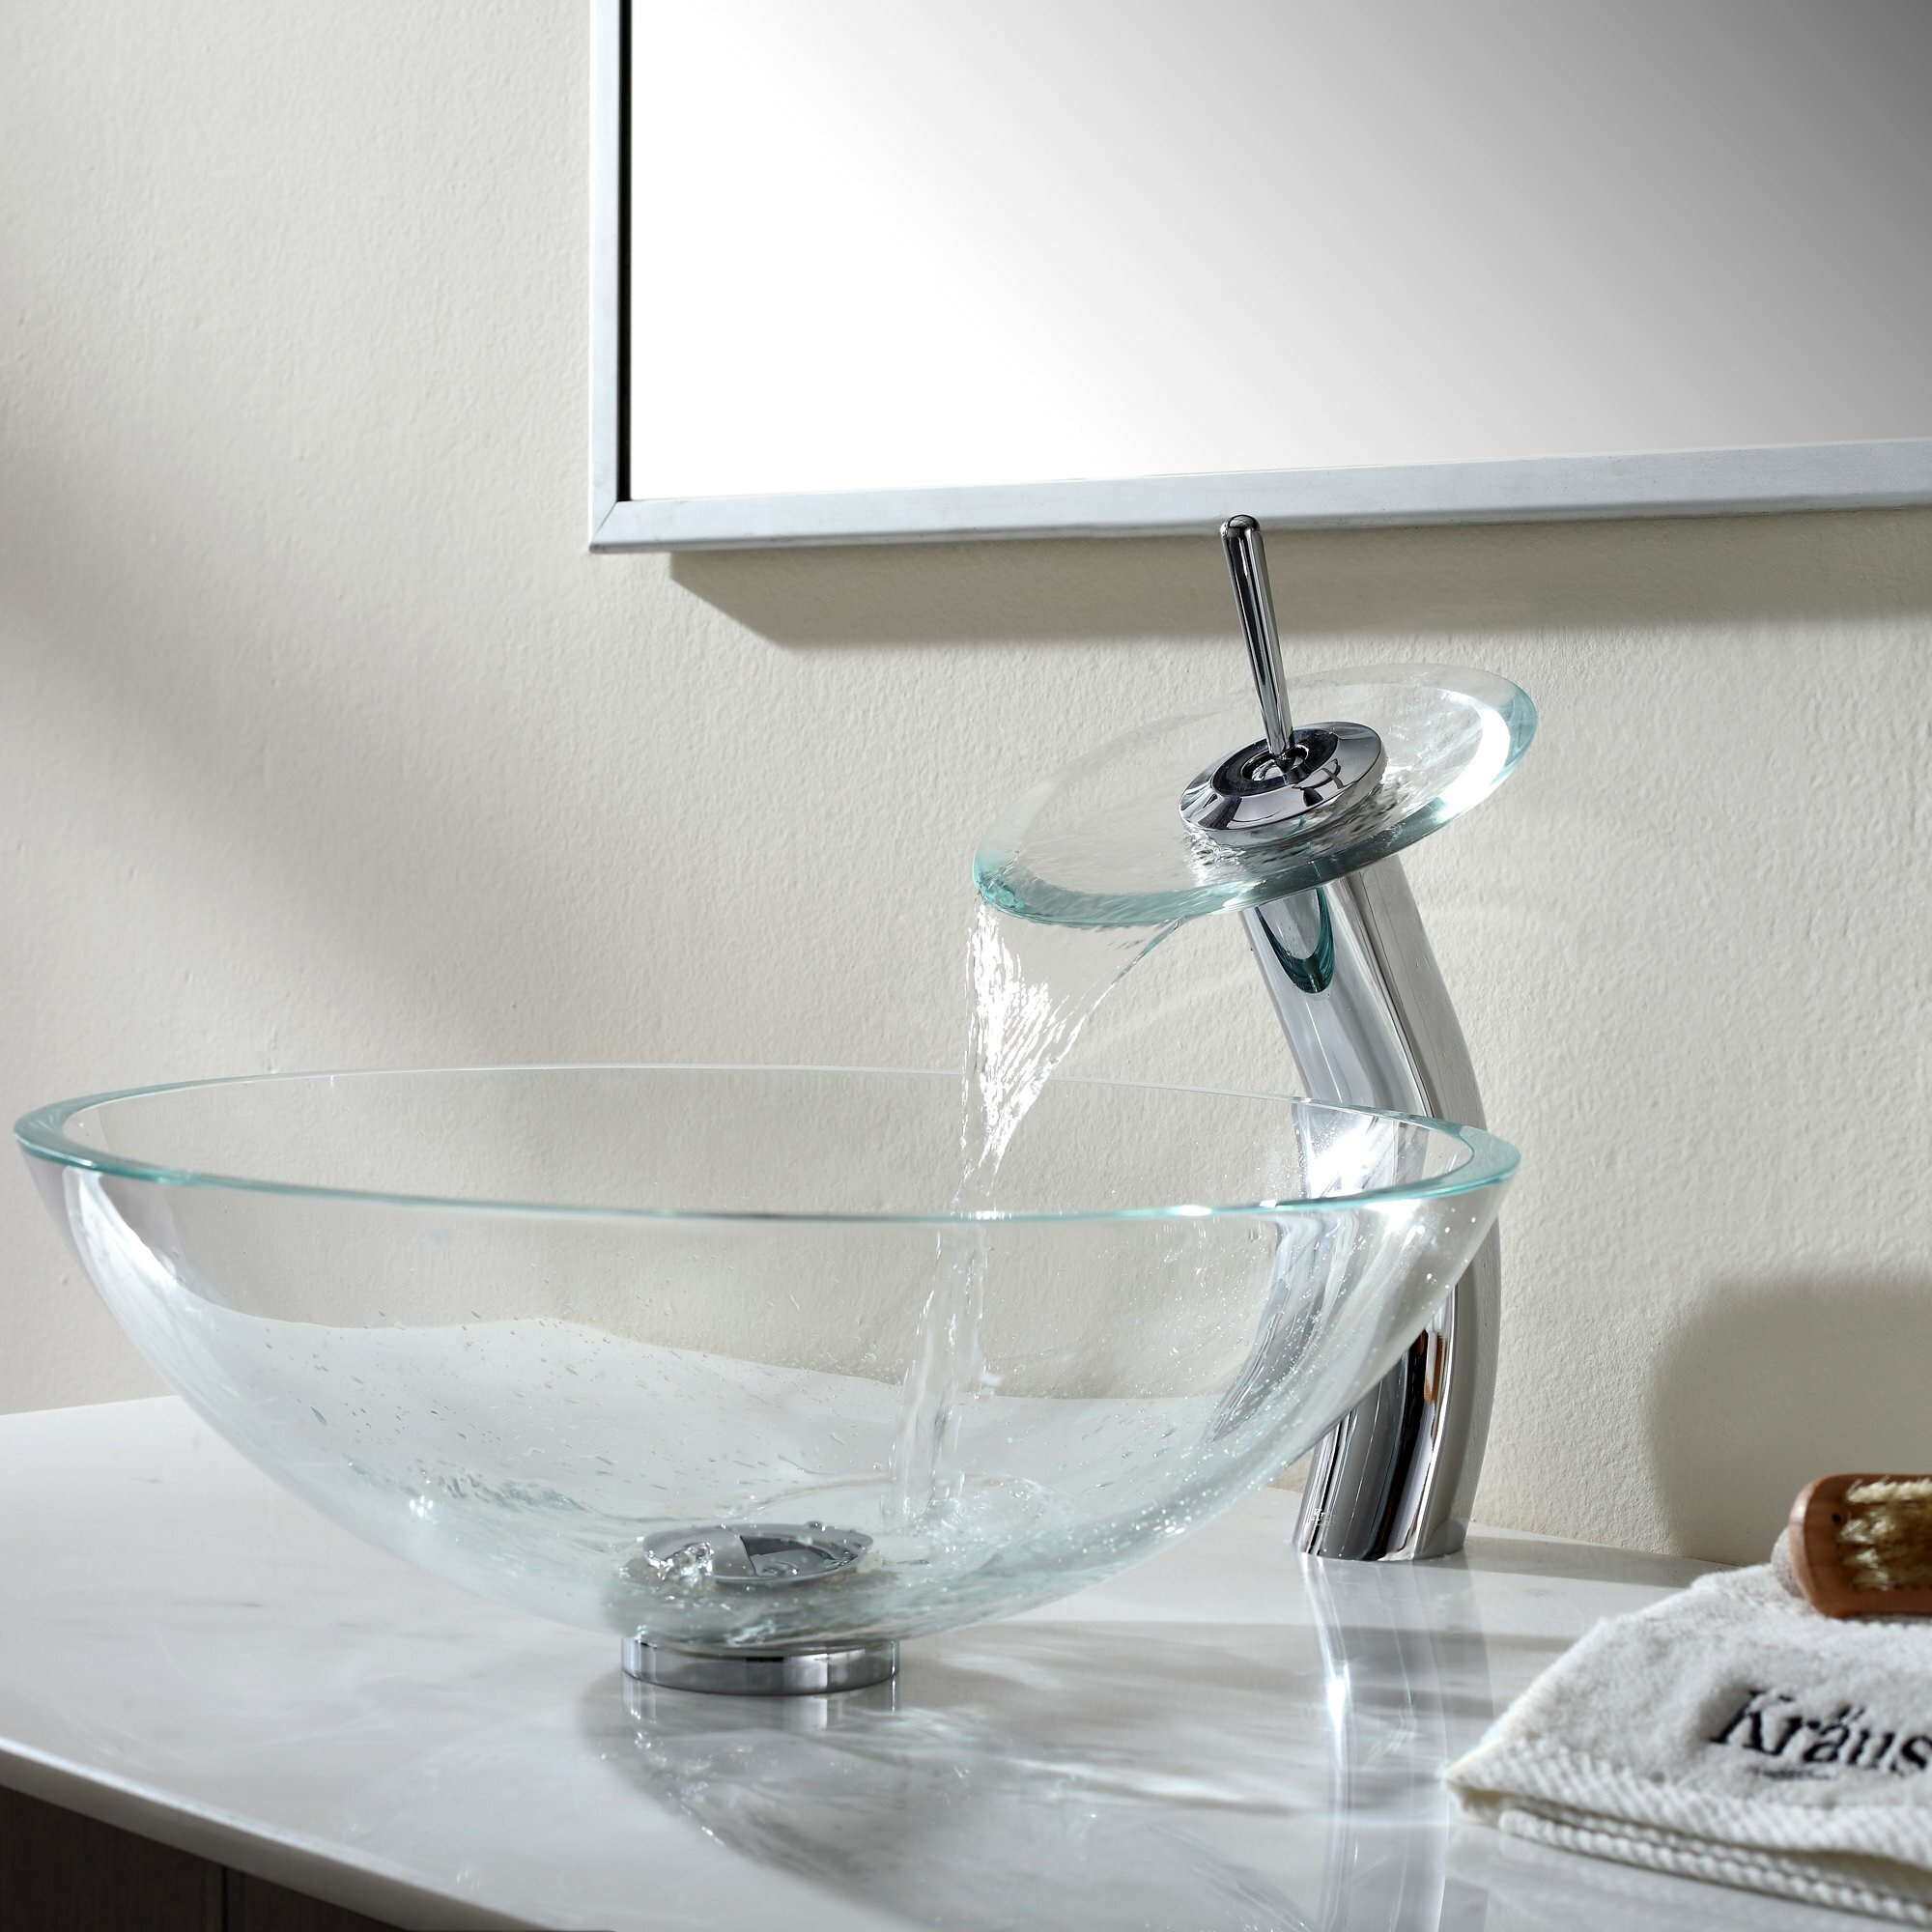 Kraus Crystal Clear Glass Vessel Sink and Waterfall Faucet & Reviews ...